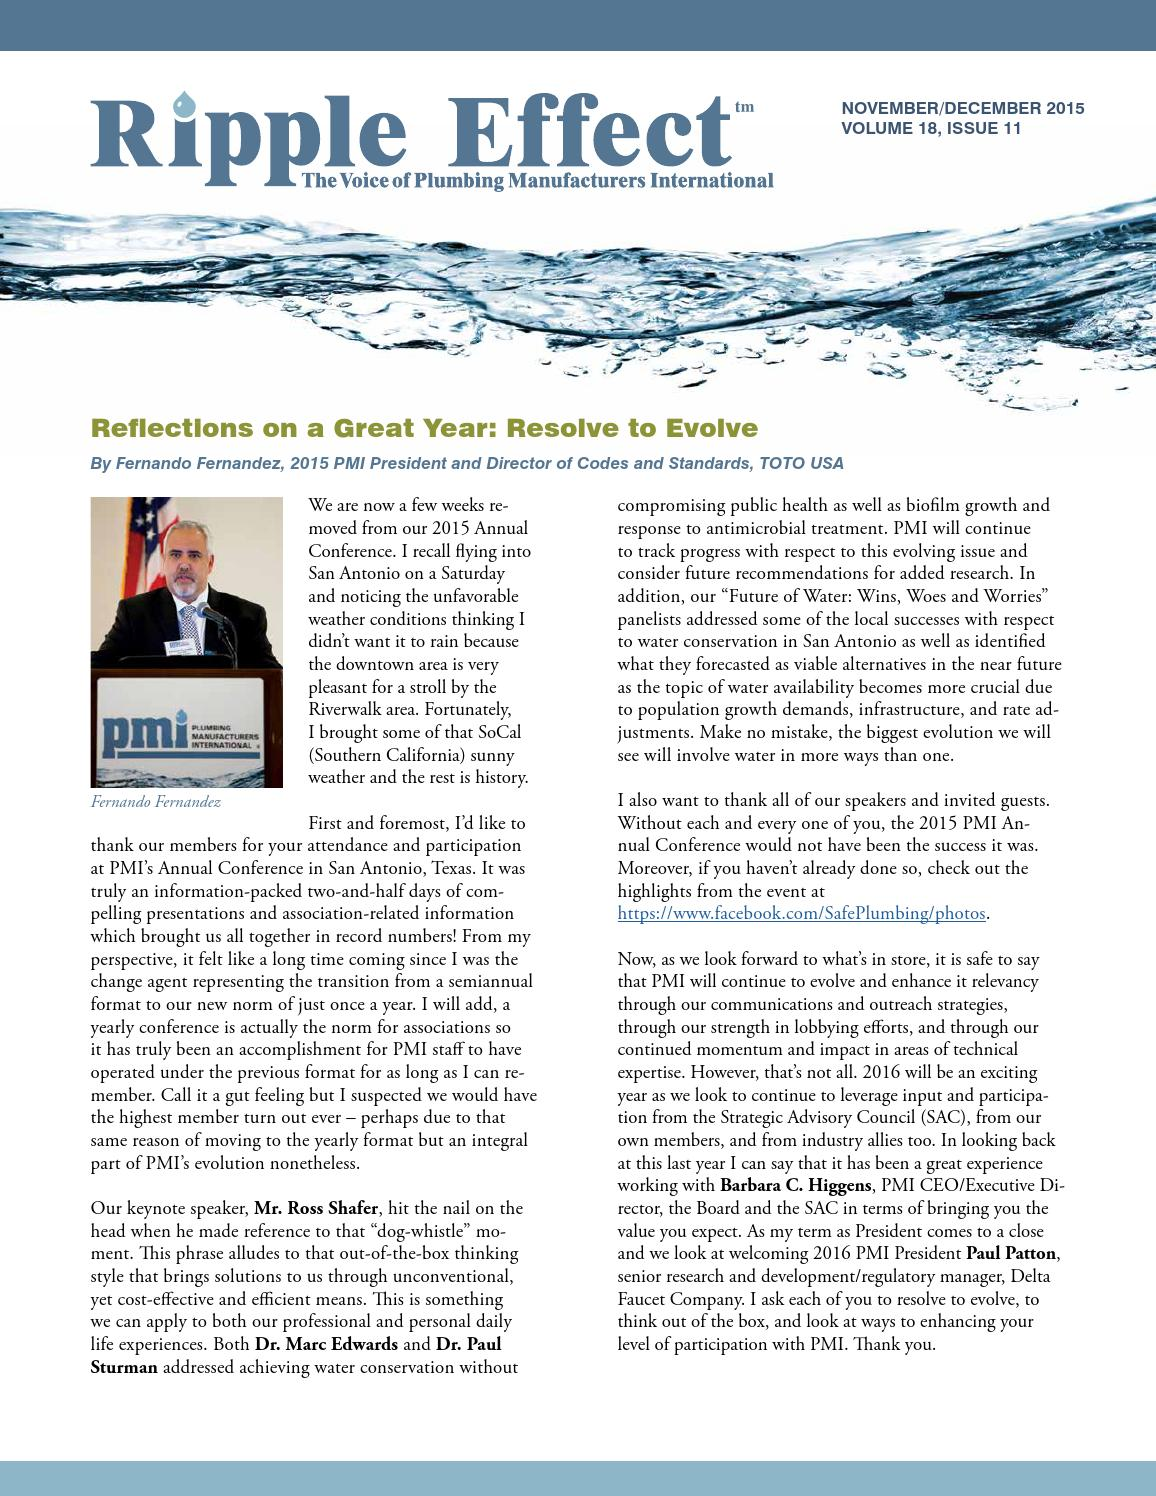 Ripple Effect Nov/Dec 2015 by Plumbing Manufacturers International ...